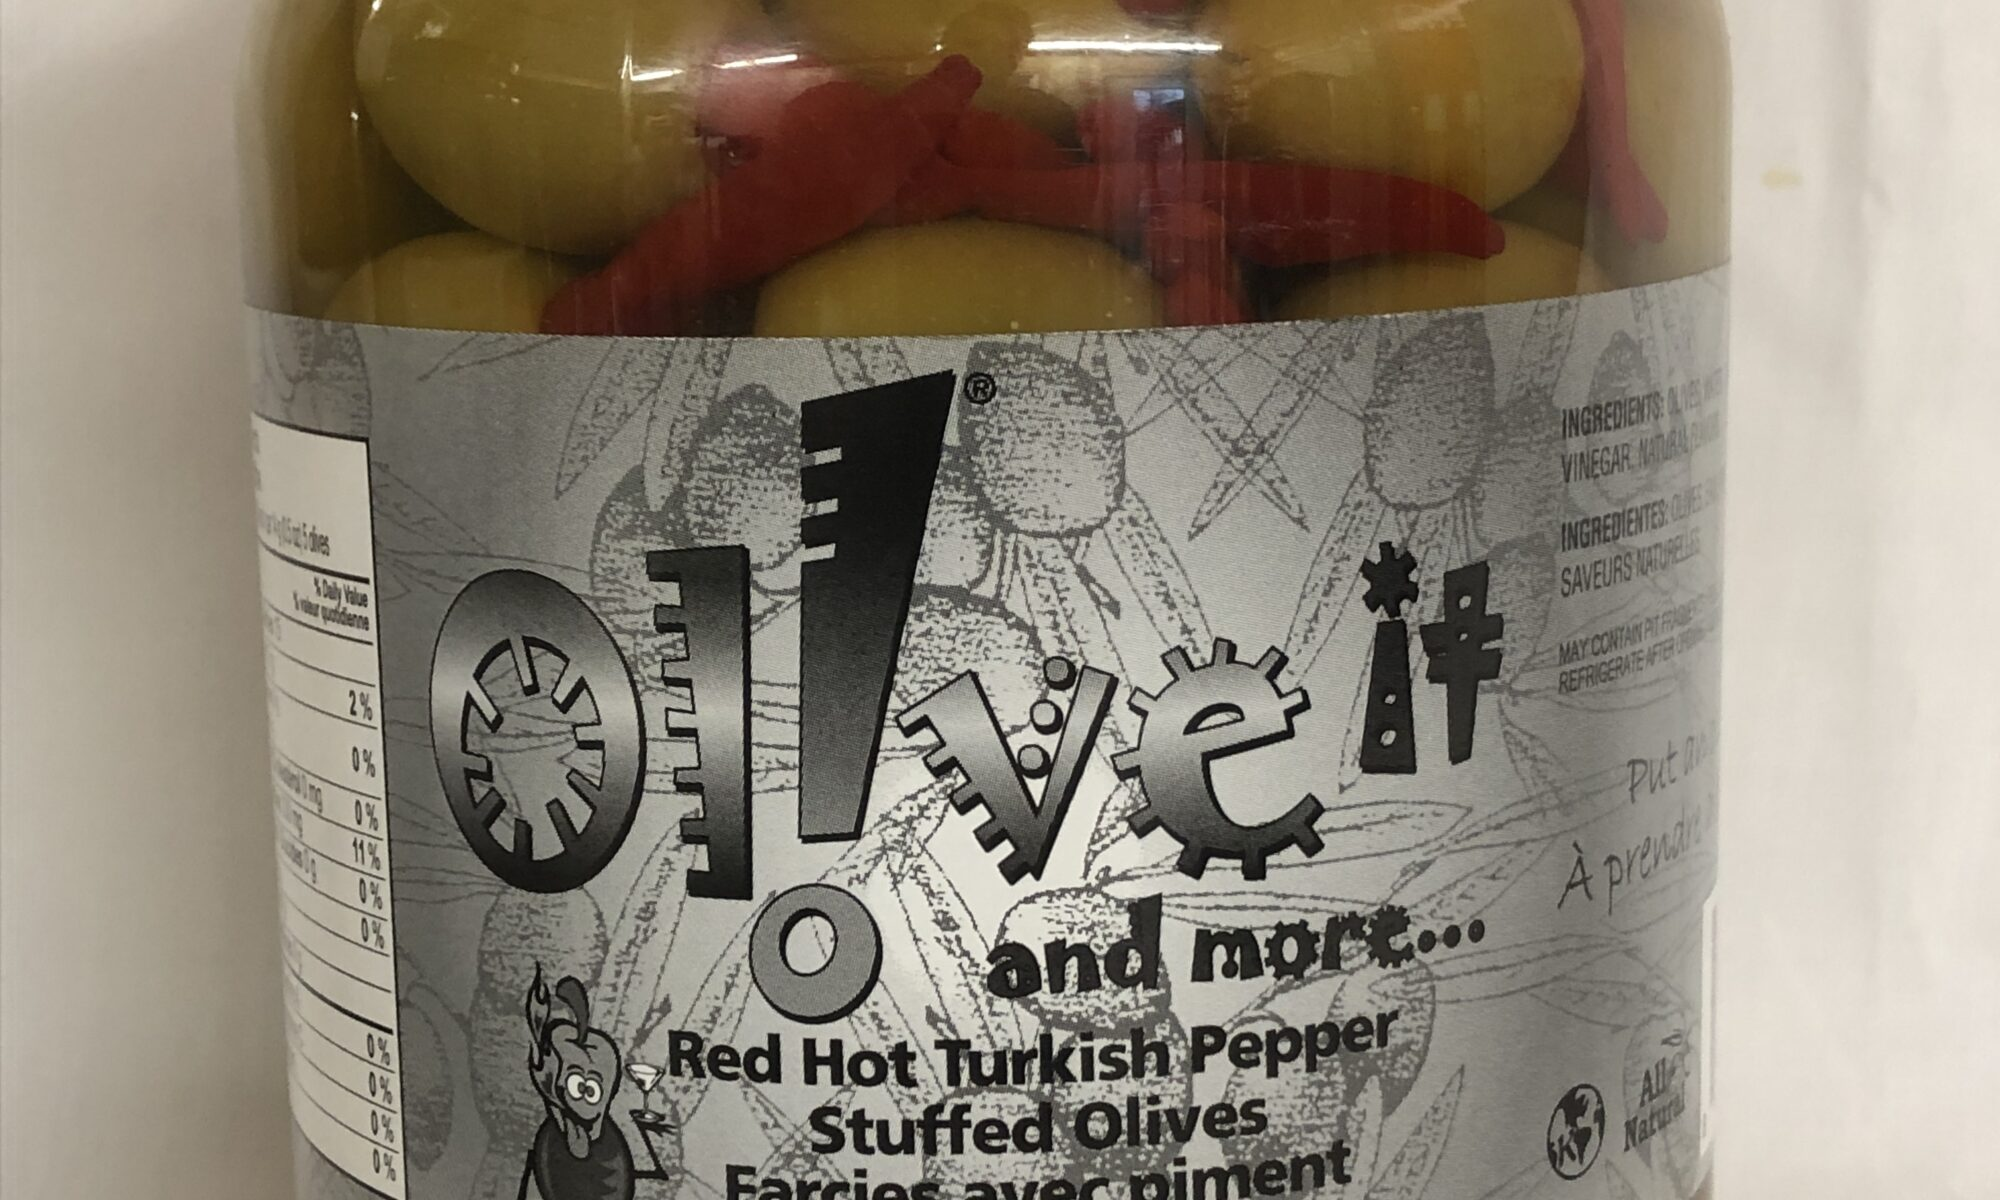 Red Hot Turkish Pepper